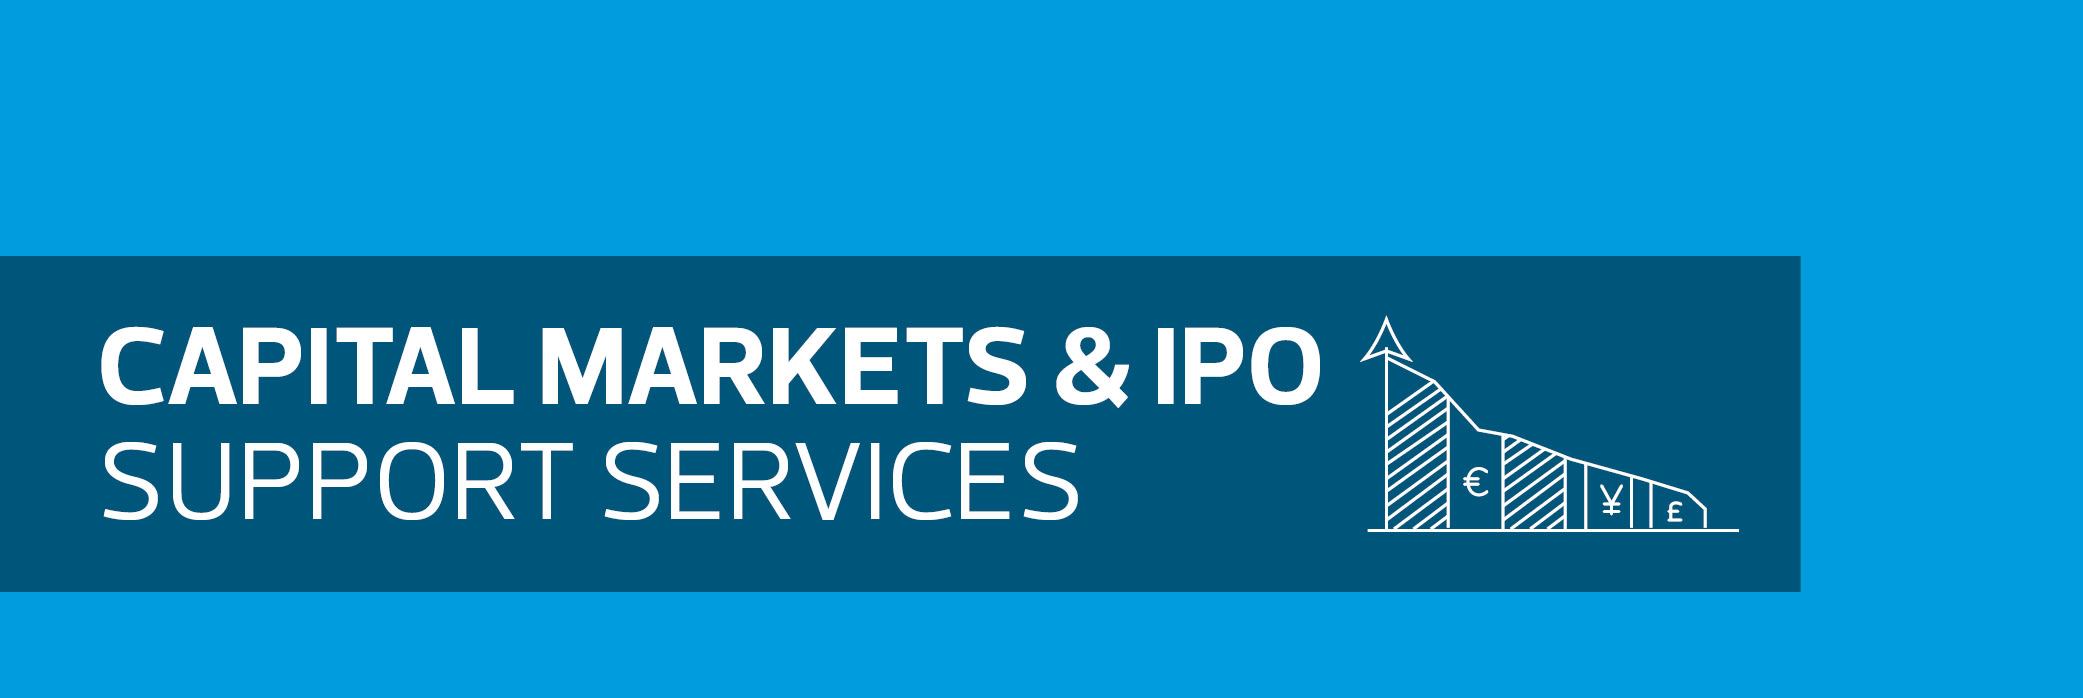 Capital Markets and IPO support services